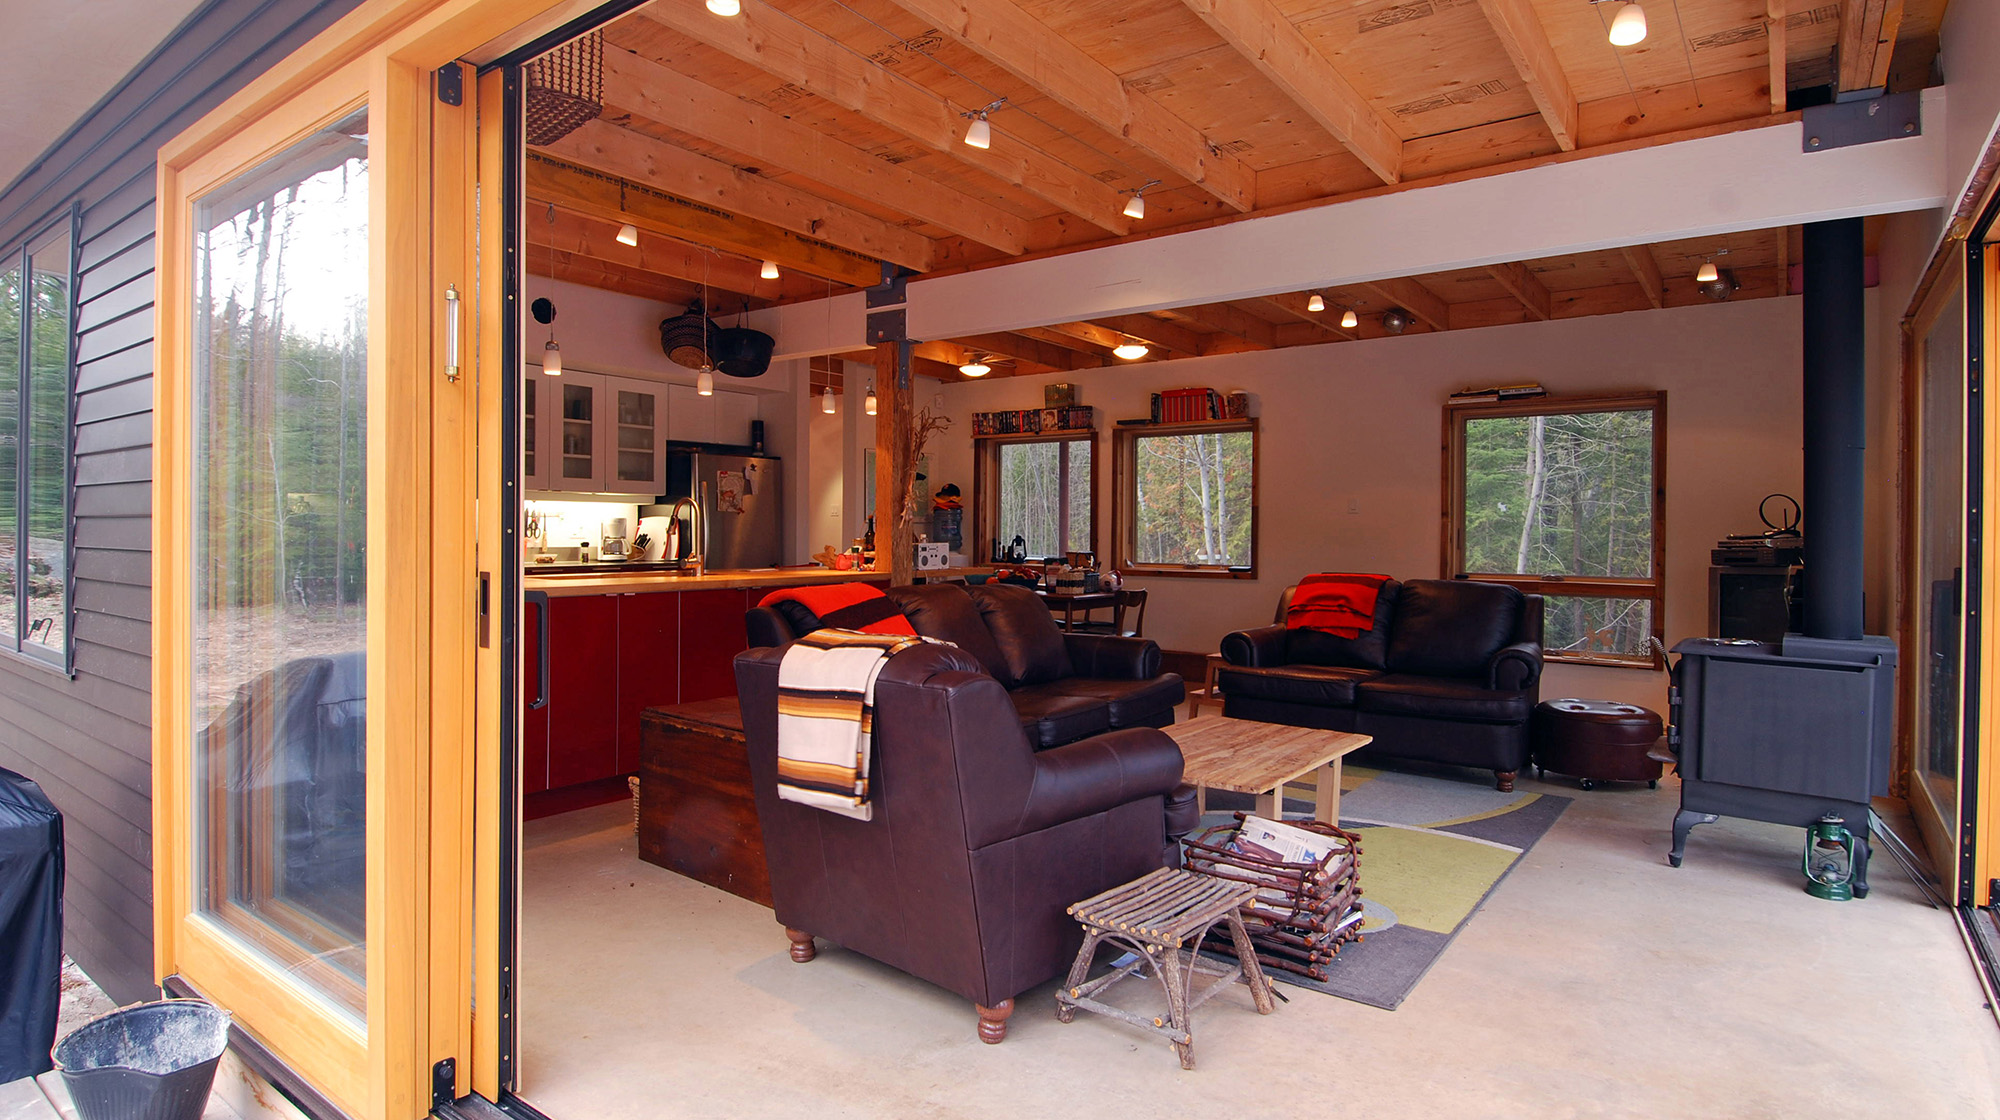 Open cottage interior with wood burning stove, polished concrete floors, exposed ceiling structure and open kitchen